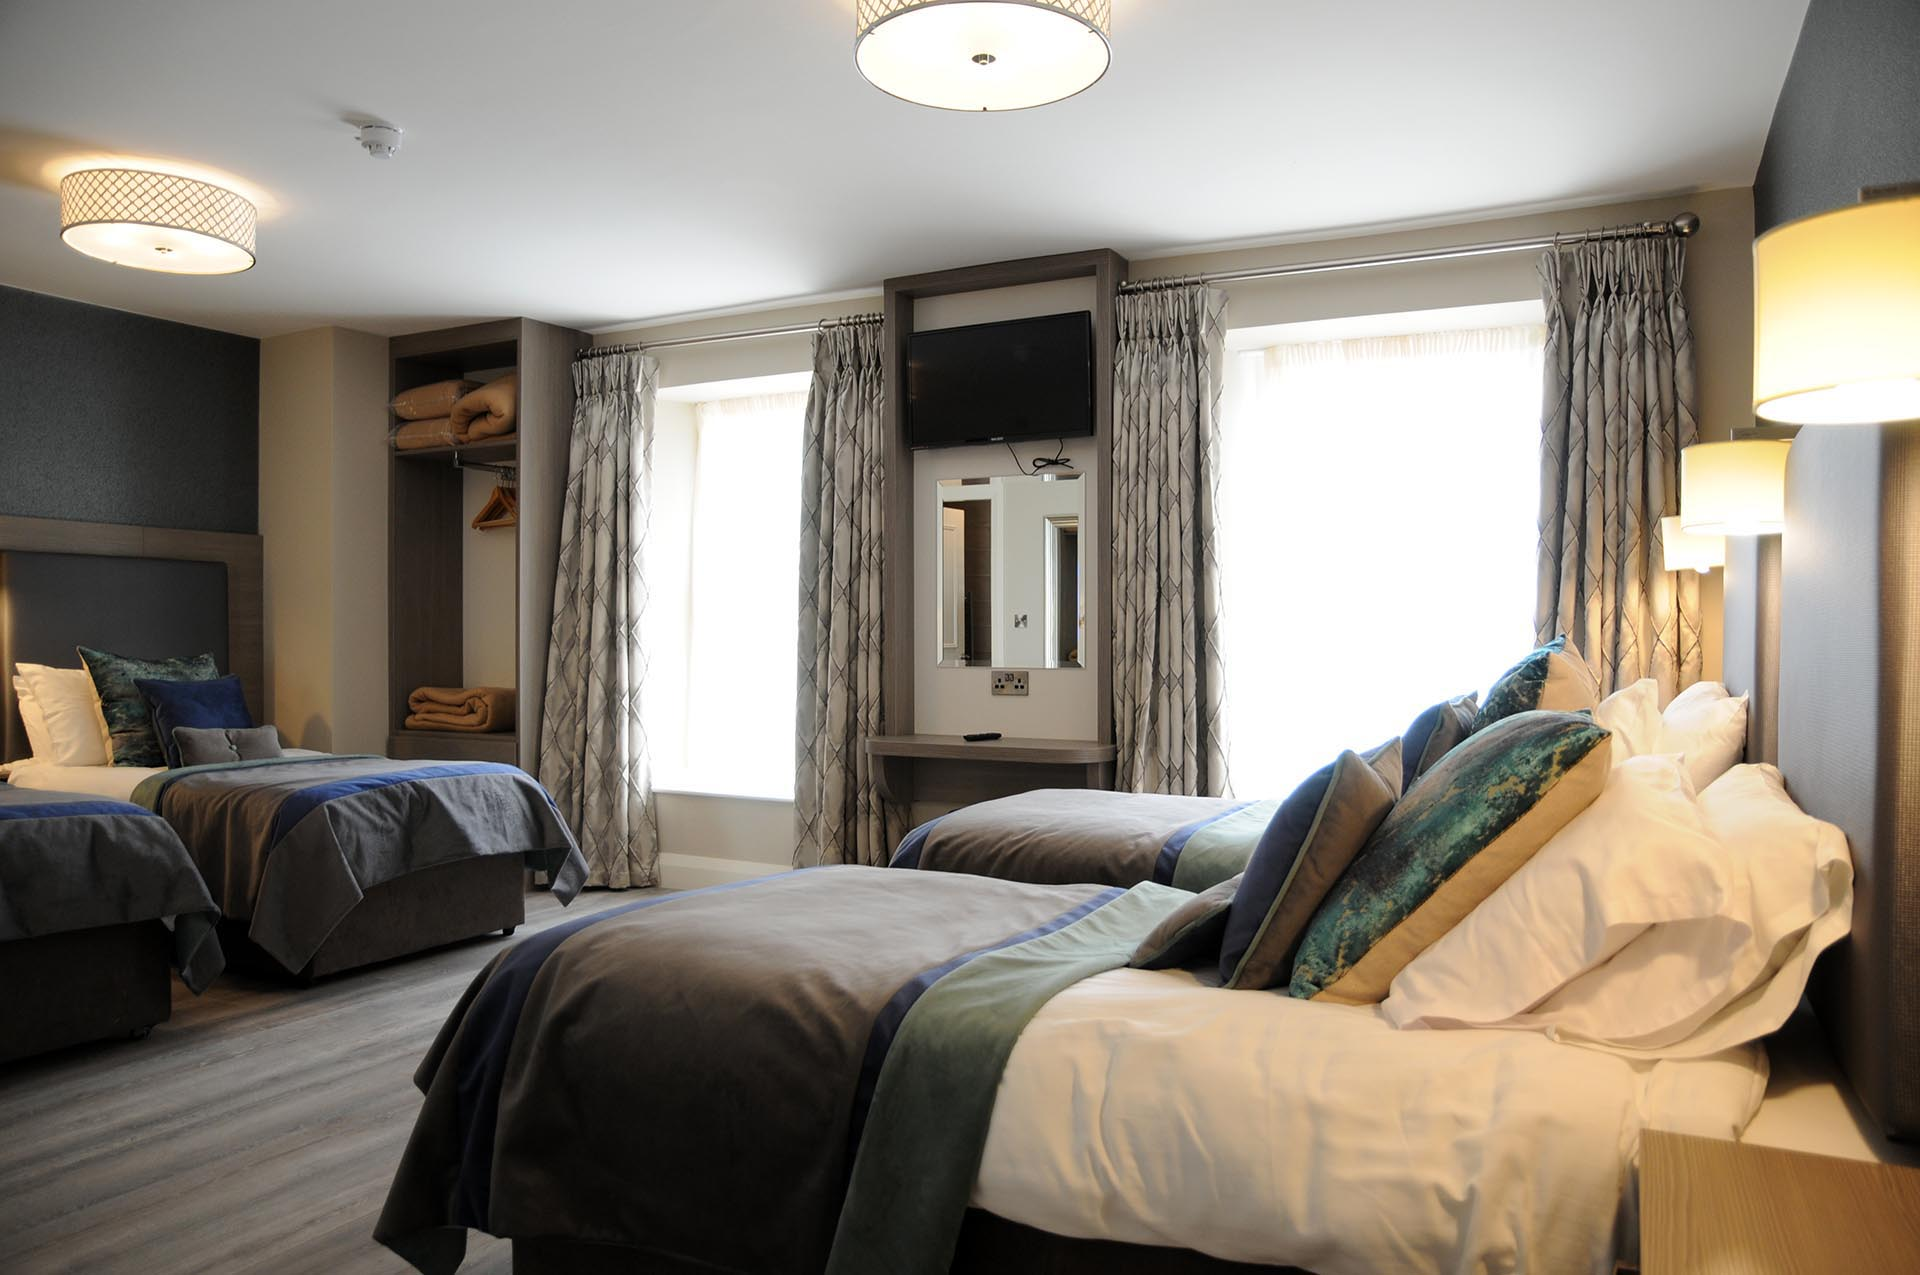 Four single beds in a 4 Bed Family Room at Barr na Sraide's B&B accommodation in Dingle Ireland